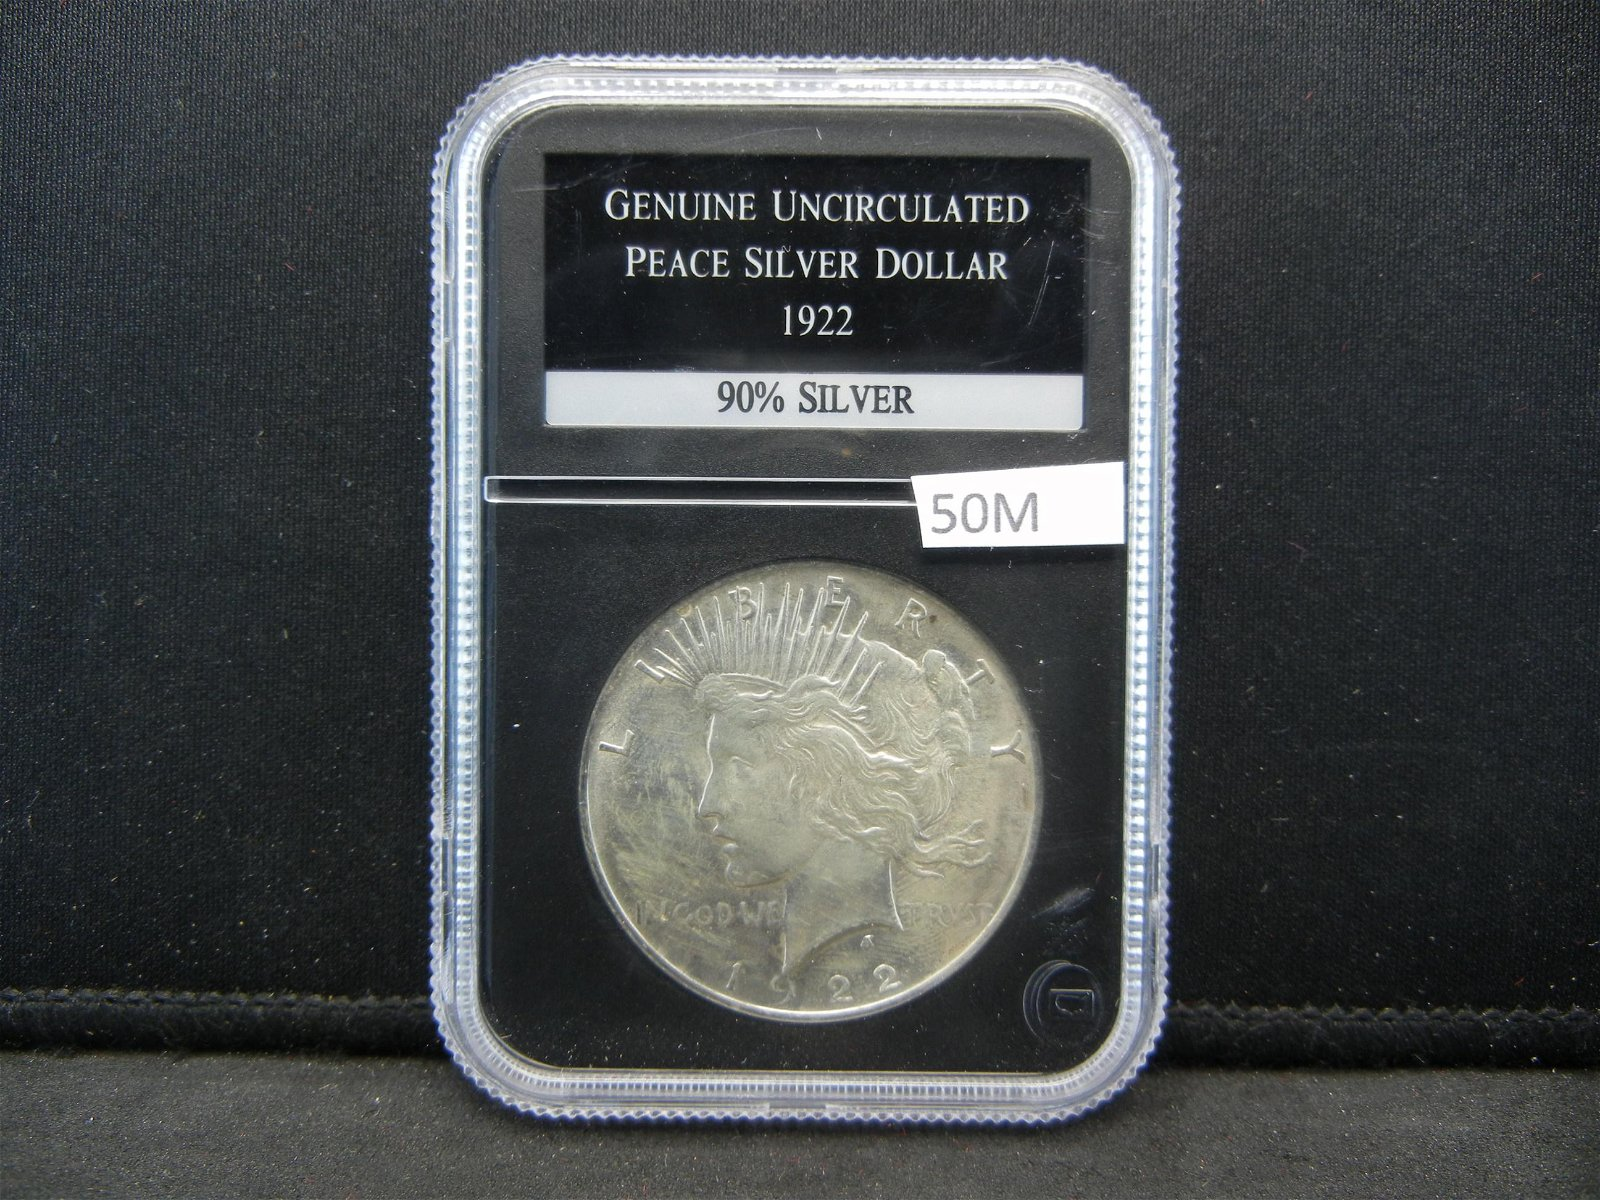 1922 Uncirculated Peace Silver Dollar Graded By PCS